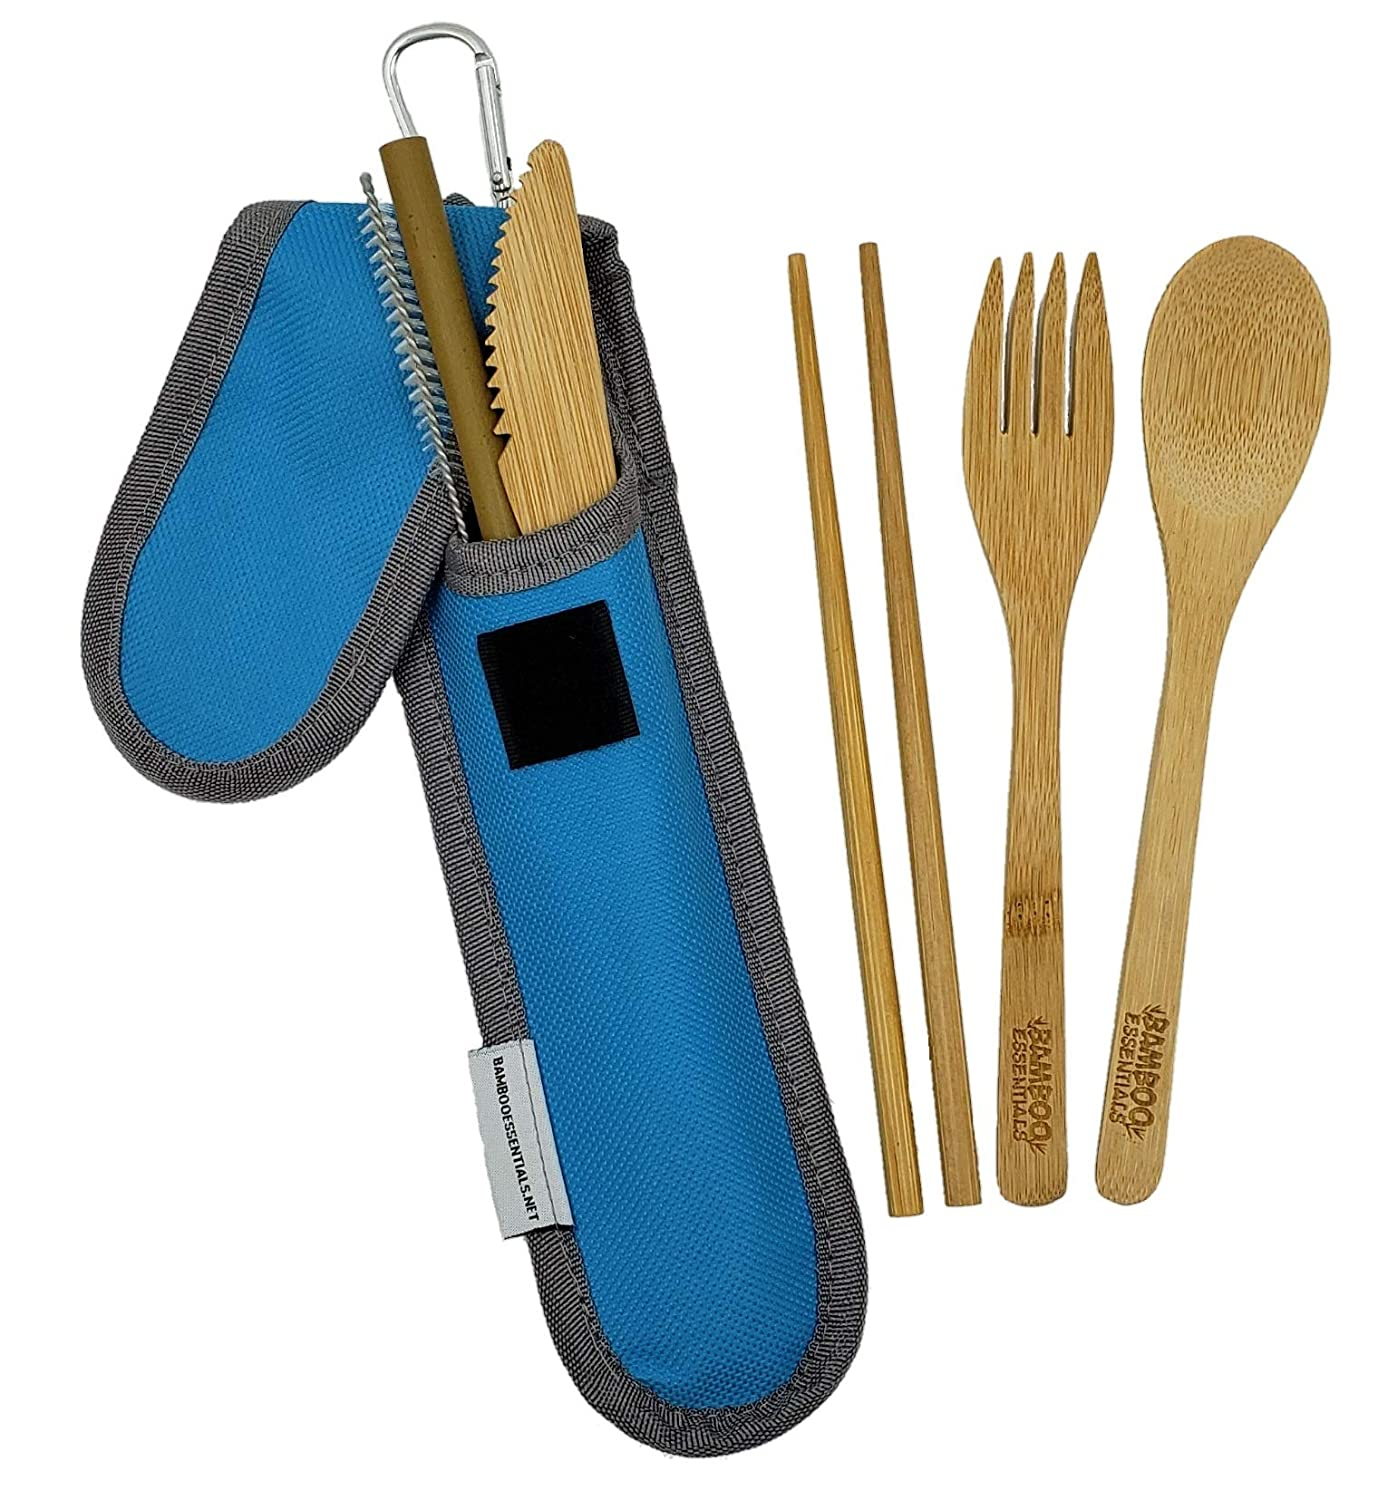 Chopsticks Straw Spoon Travel Pouch and Carabiner Knife Bamboo Fork Straw-cleaning brush Excellent For Everyday Use! Bamboo Travel Utensil Set Summer Green